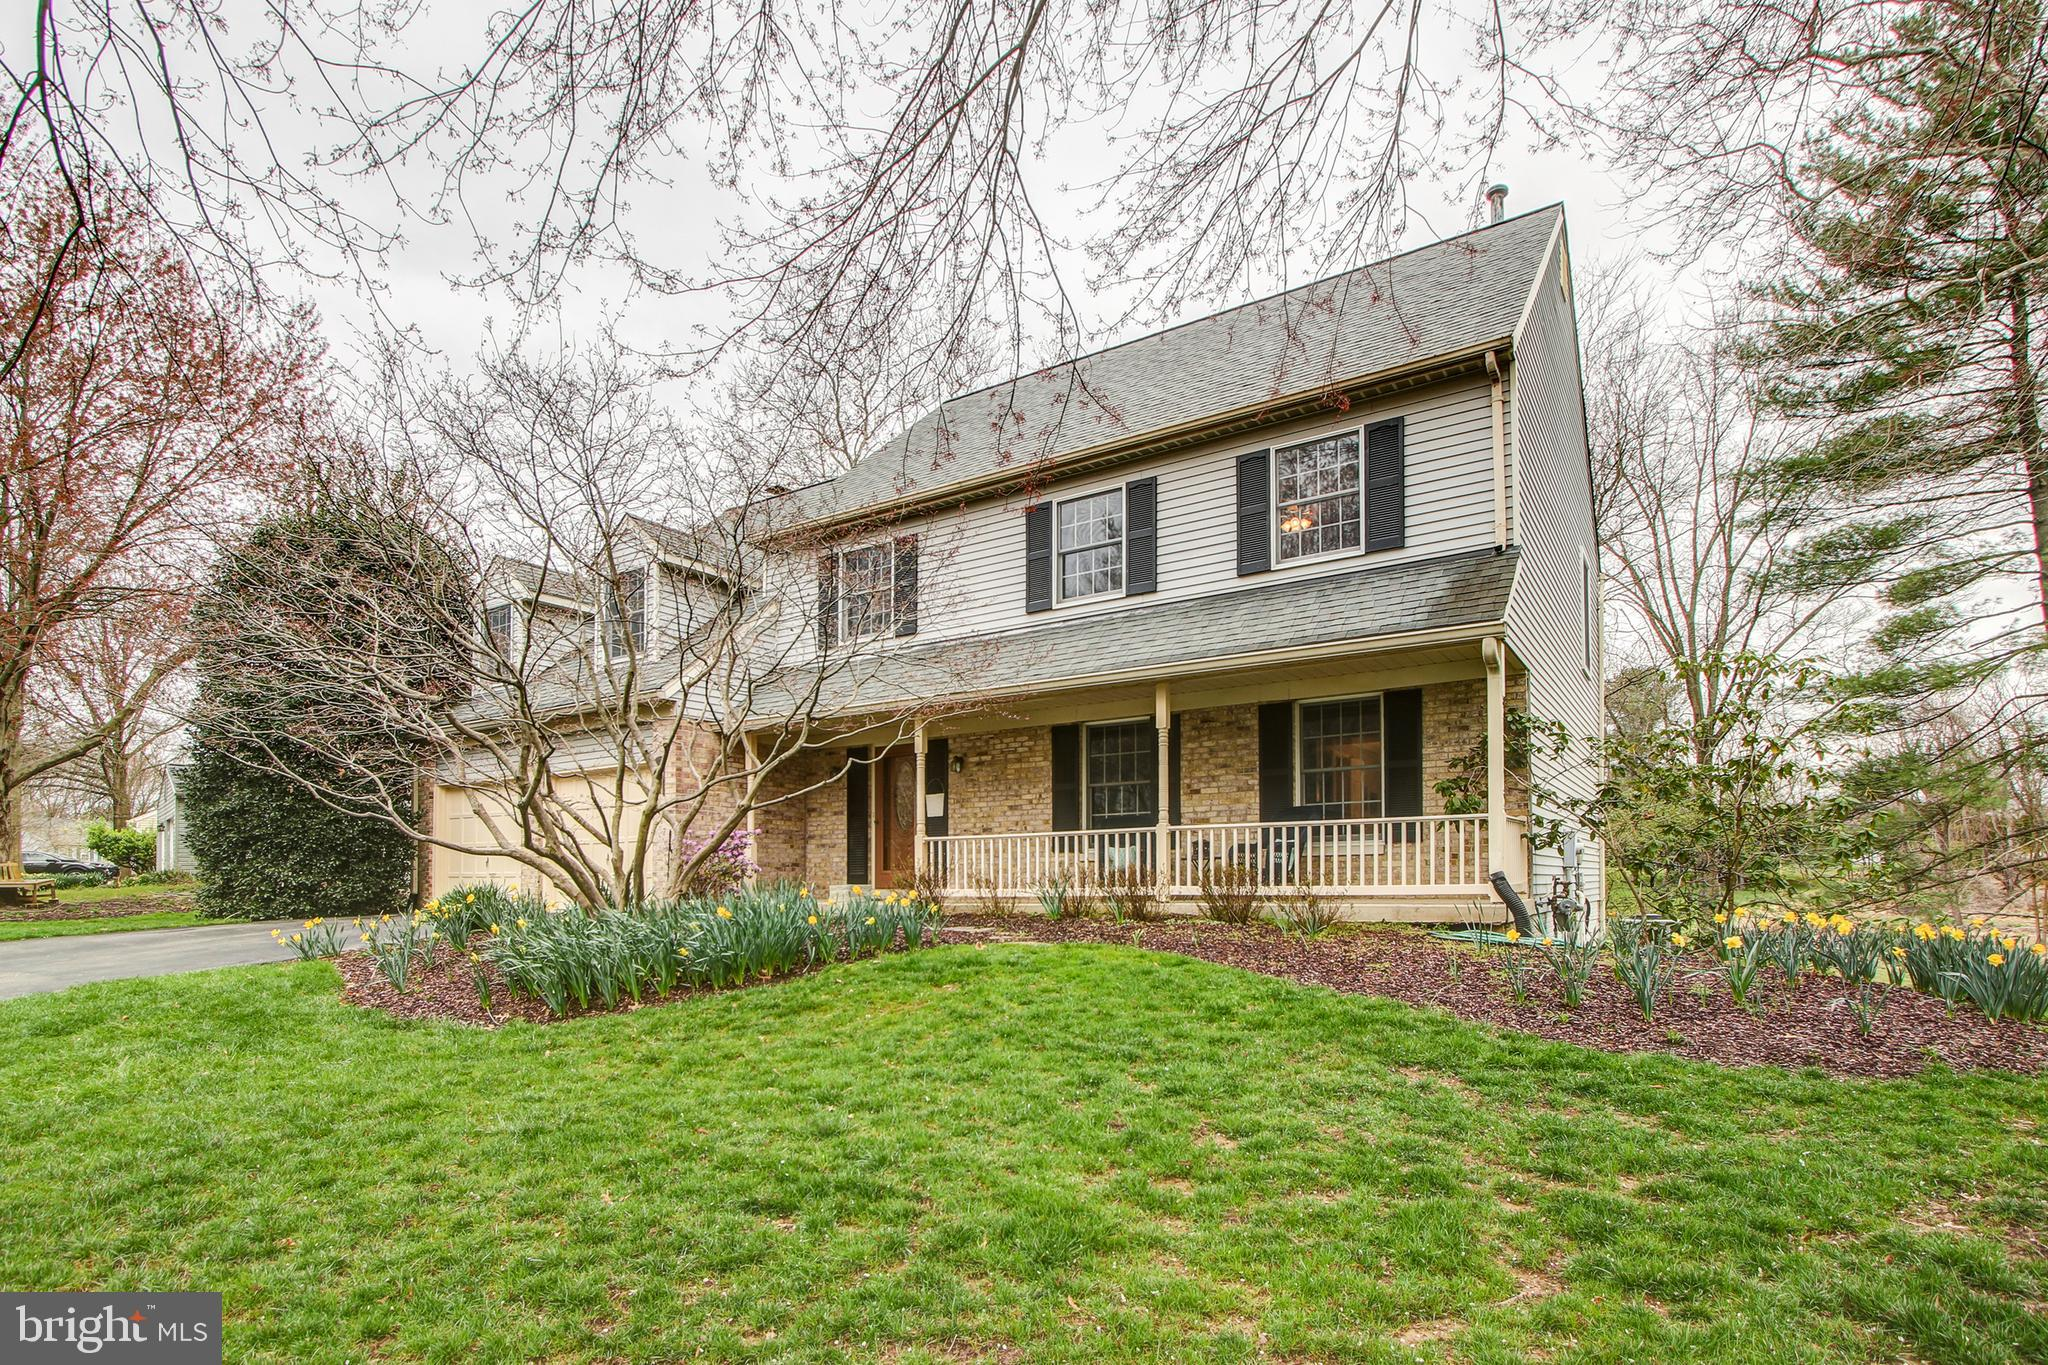 7201 GRINNELL DRIVE, ROCKVILLE, MD 20855